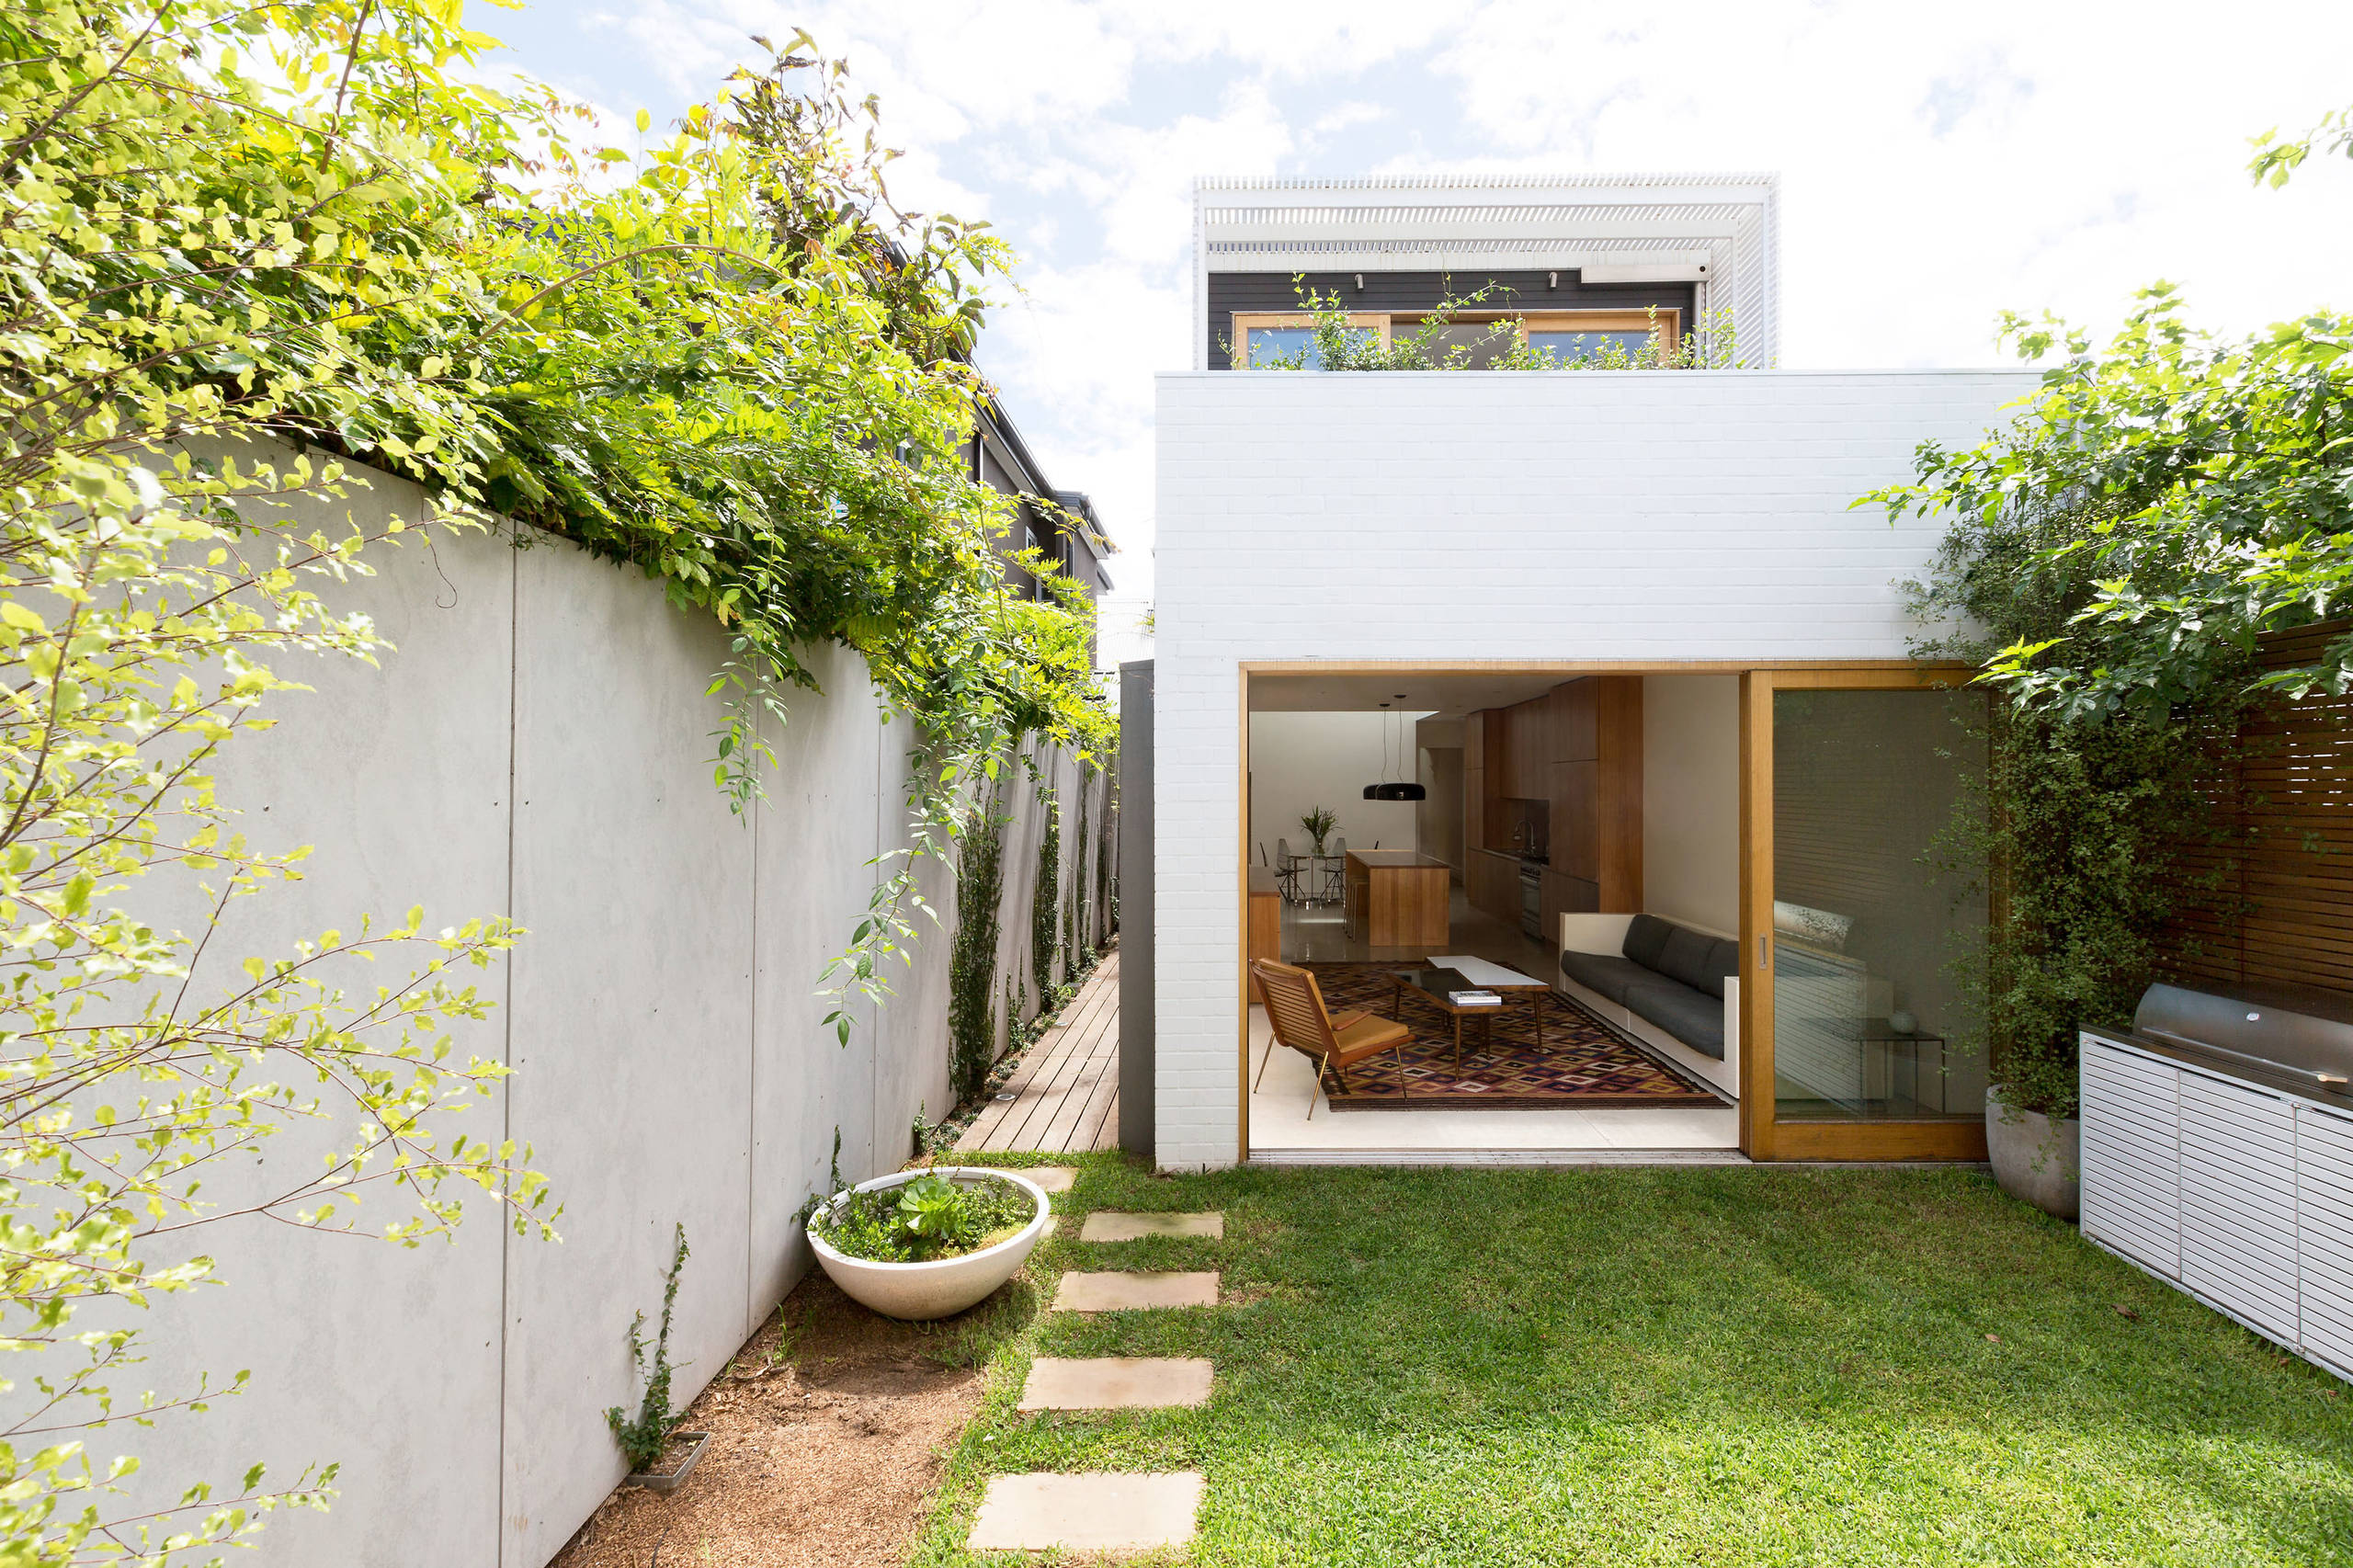 75 Beautiful Small Modern Exterior Home Pictures Ideas January 2021 Houzz